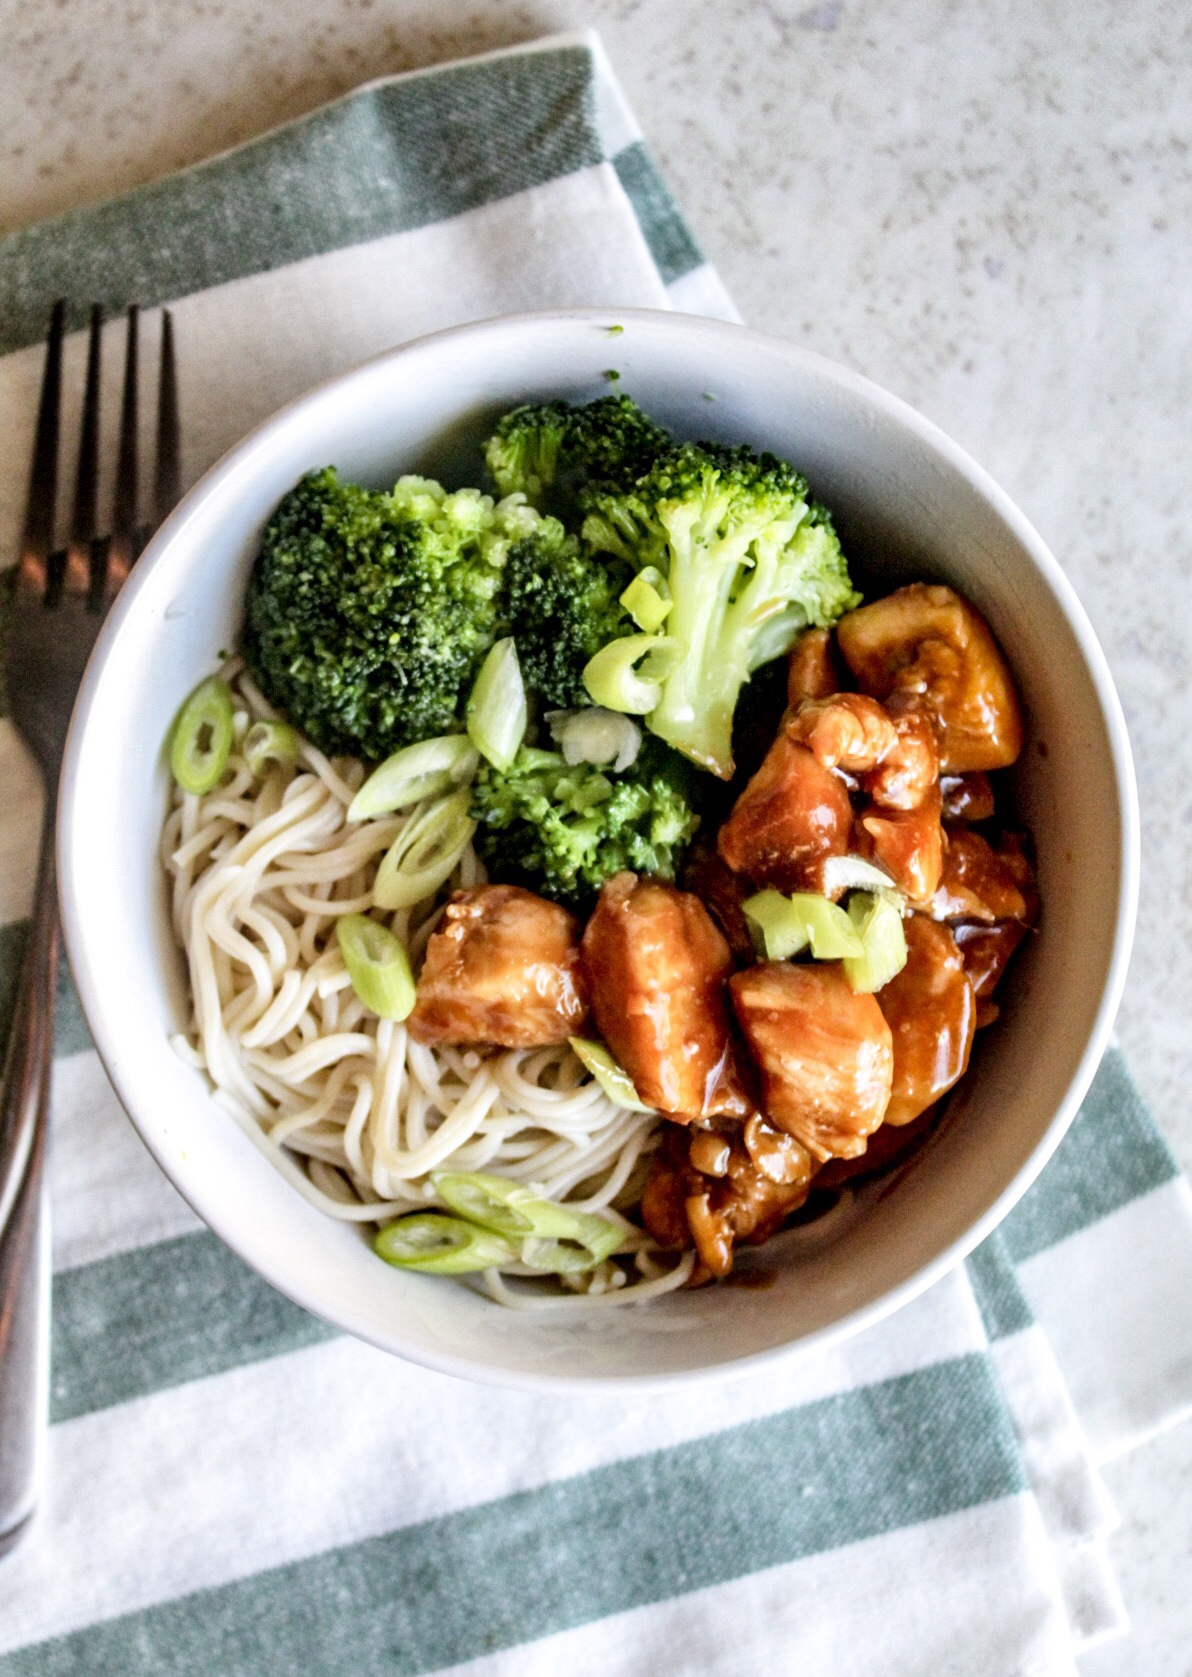 teriyaki chicken with gluten free ramen noodles